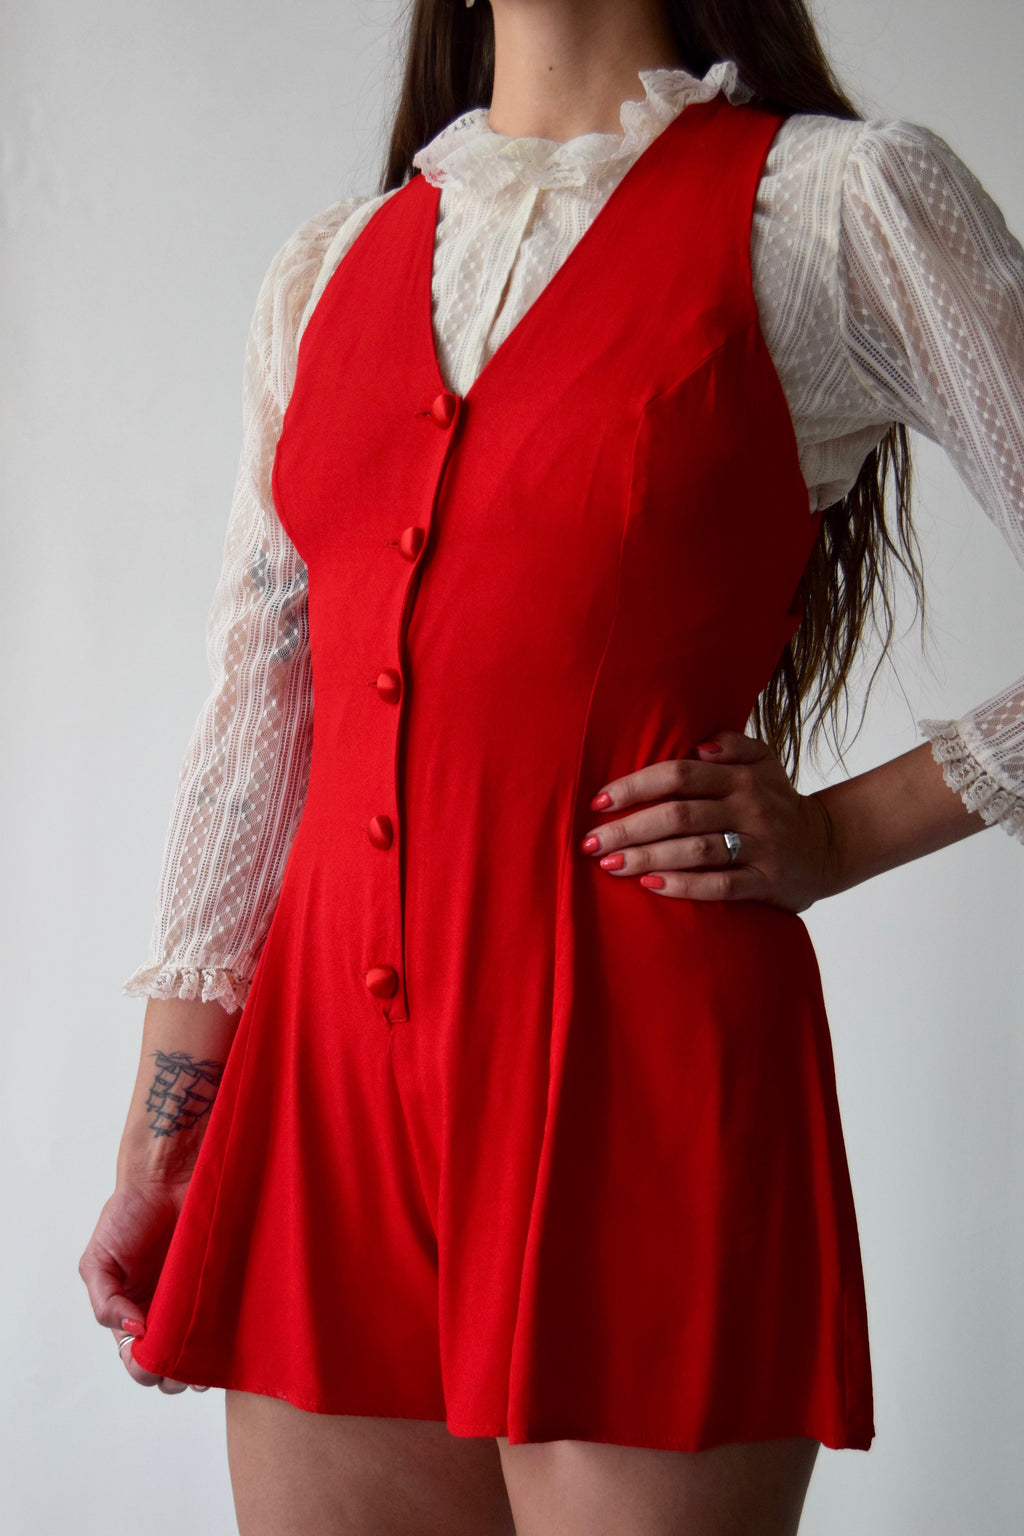 Scarlet Romper FREE SHIPPING TO THE U.S.